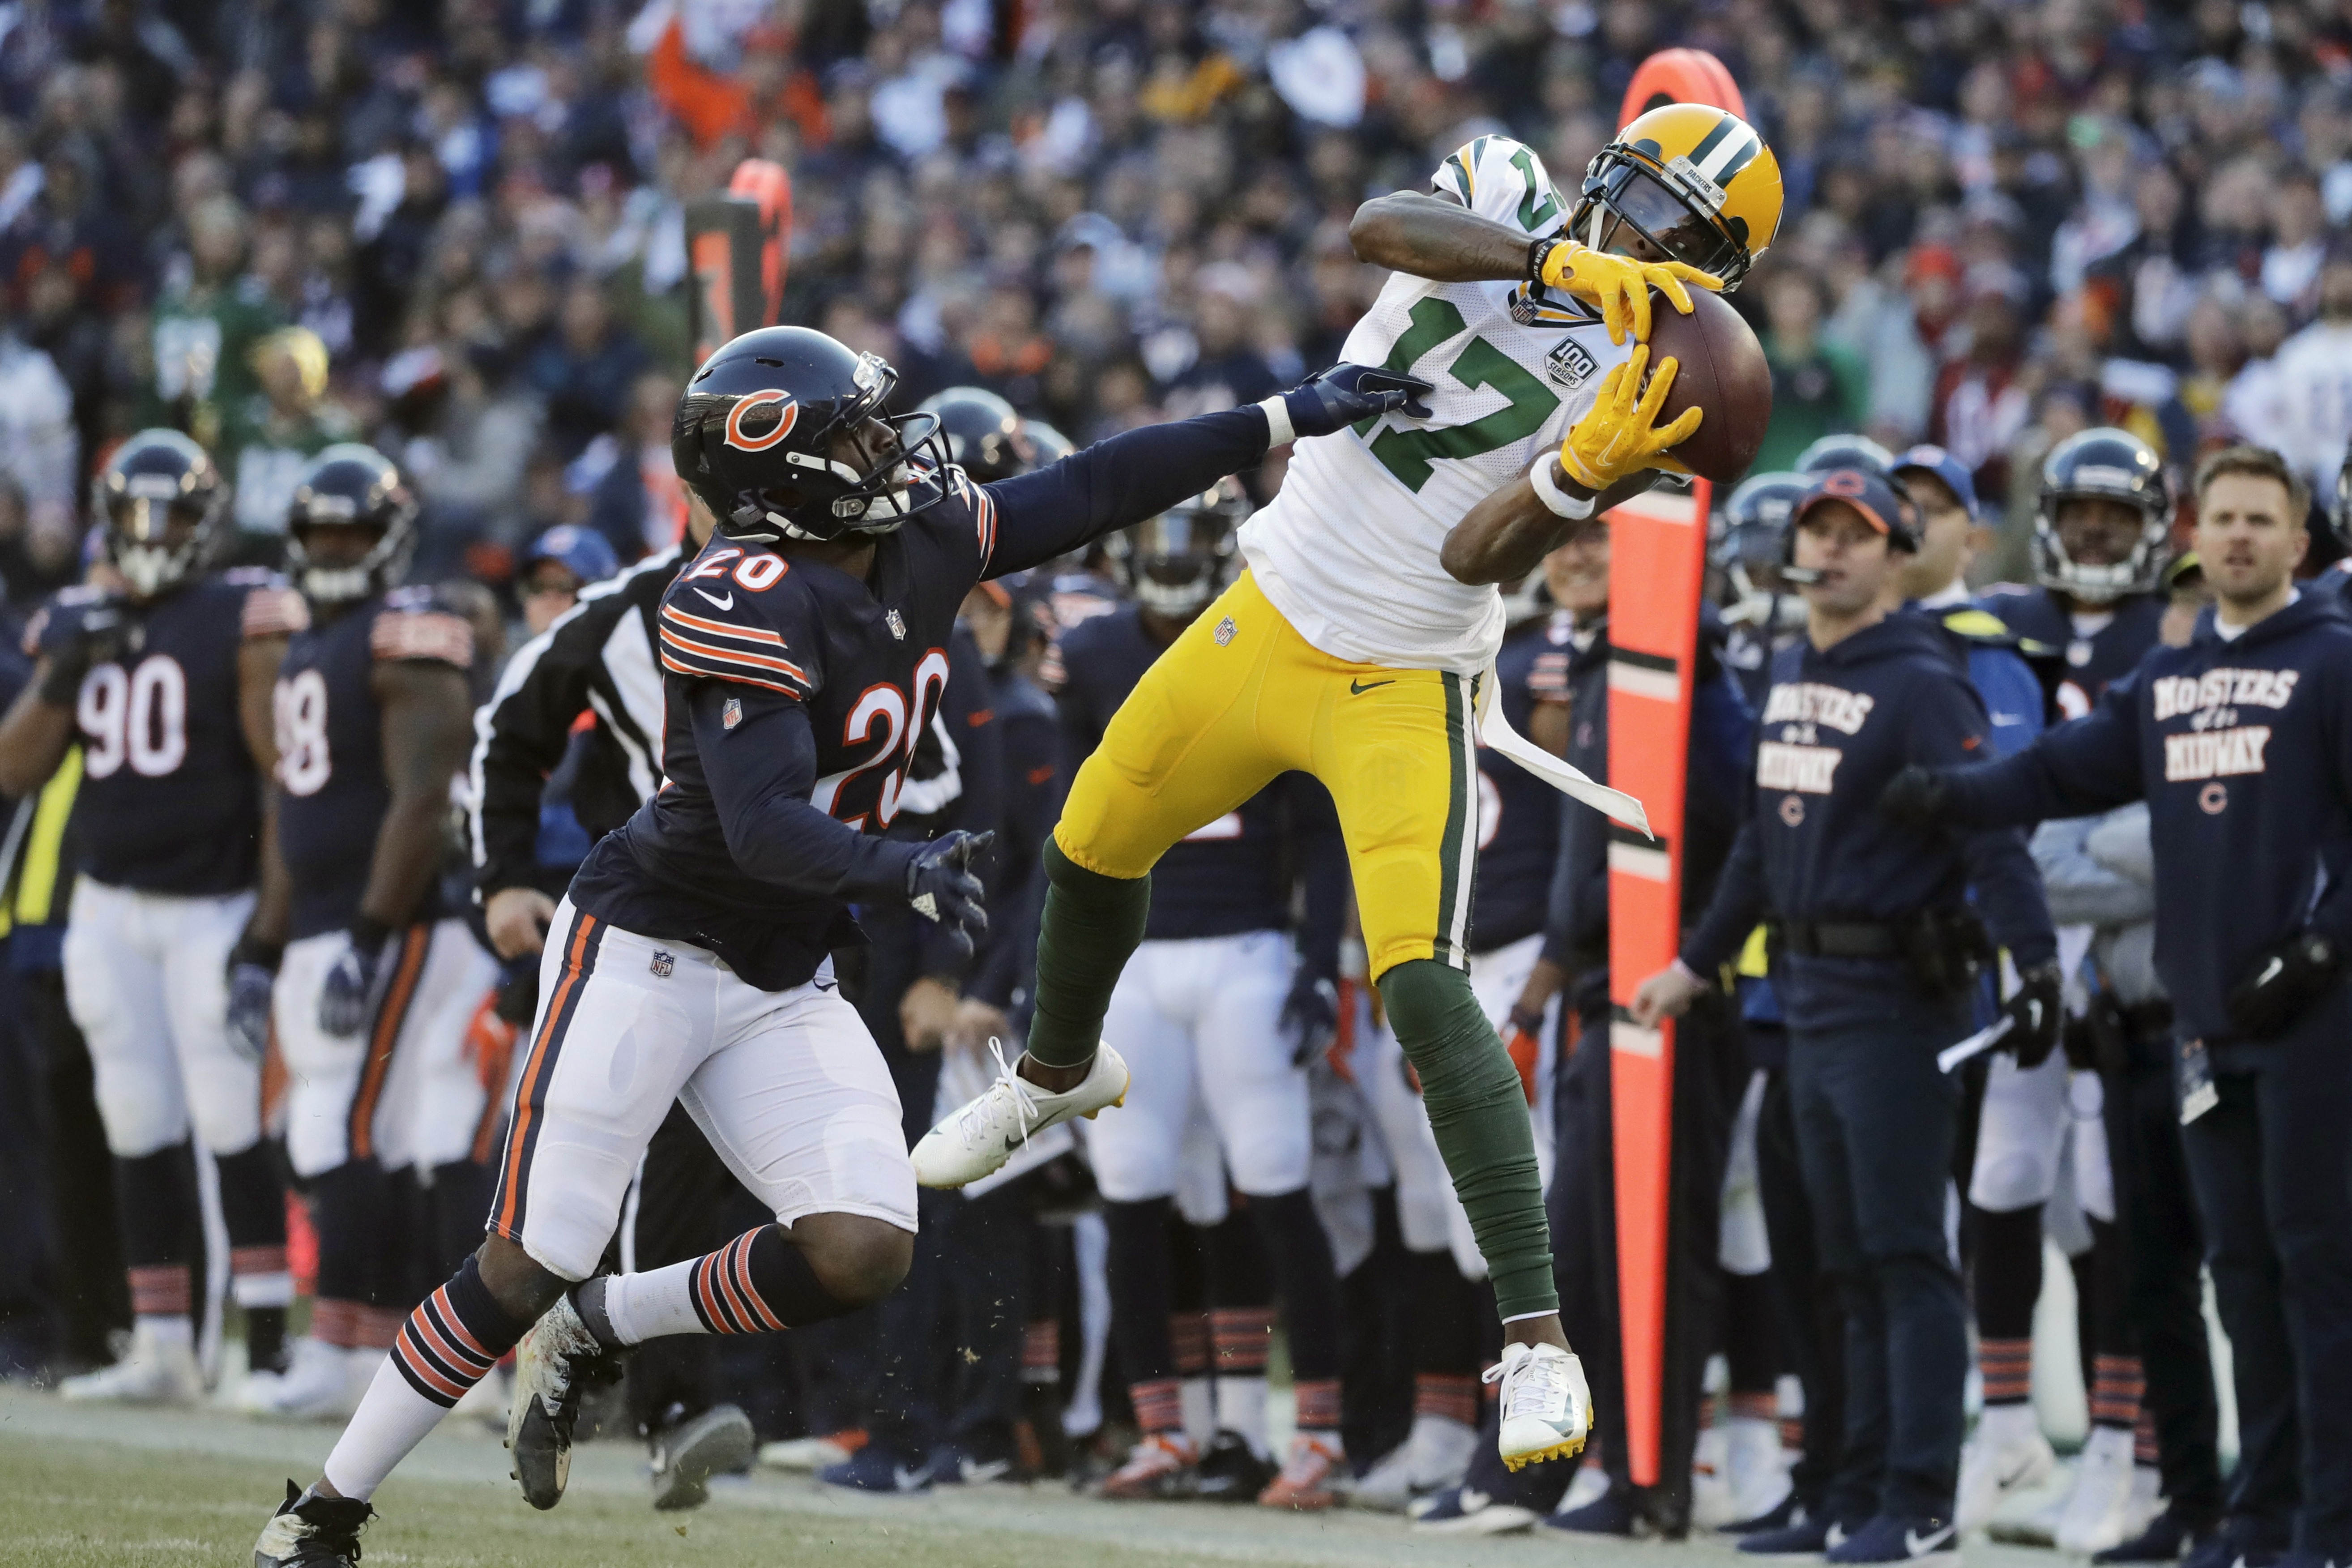 Packers wide receiver Davante Adams (making a difficult catch against Bears cornerback Prince Amukamara in 2018) had 11 receptions for 206 yards and a touchdown against the Bengals last week \